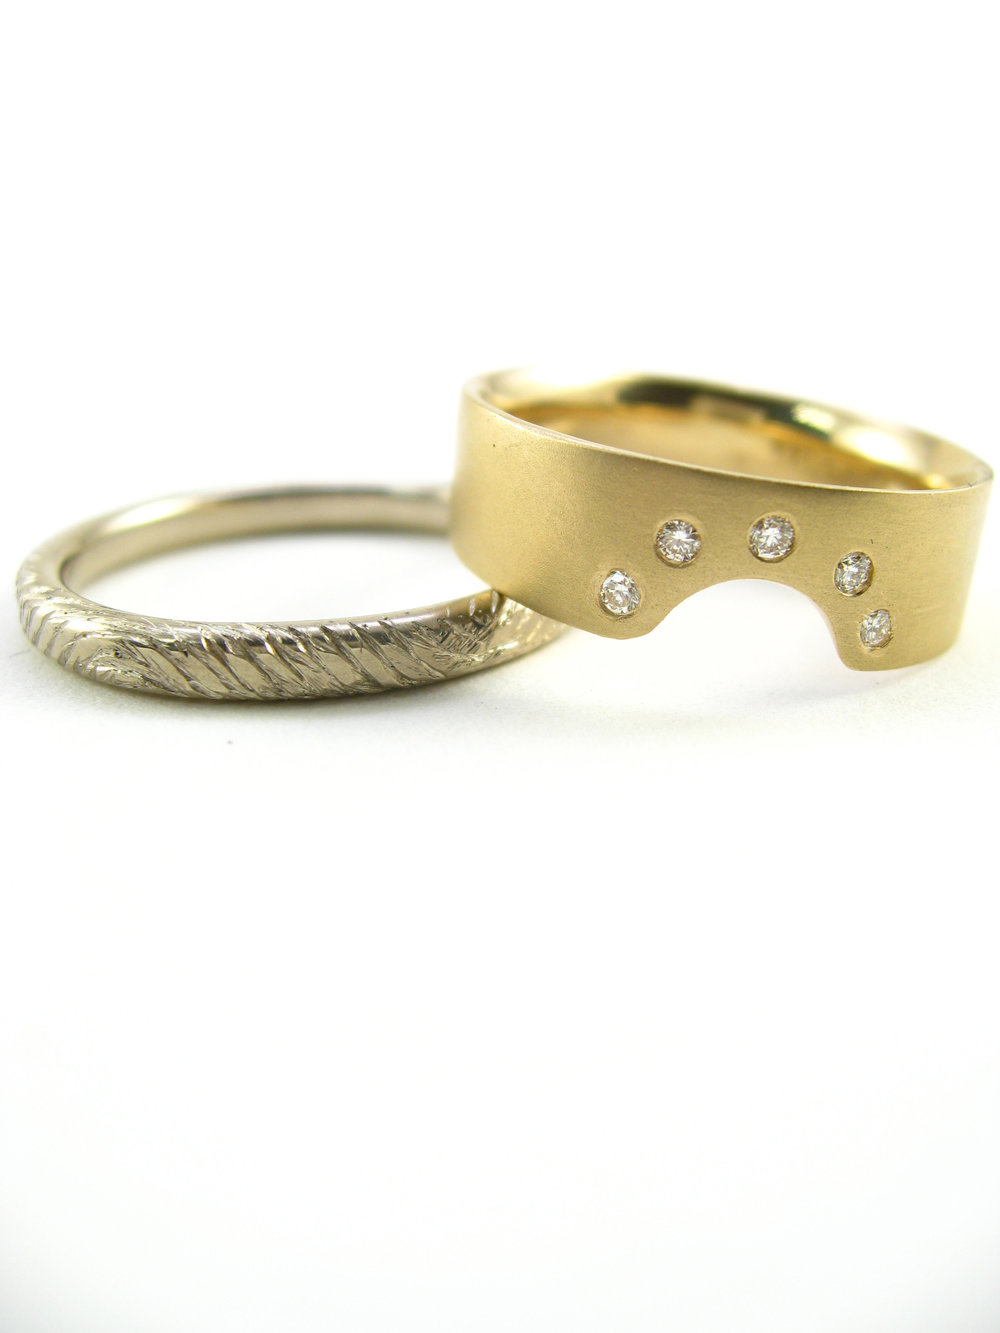 edit fairtrade ring iris ellenwood shakti wedding gold ethical rings sustainable in product engagement